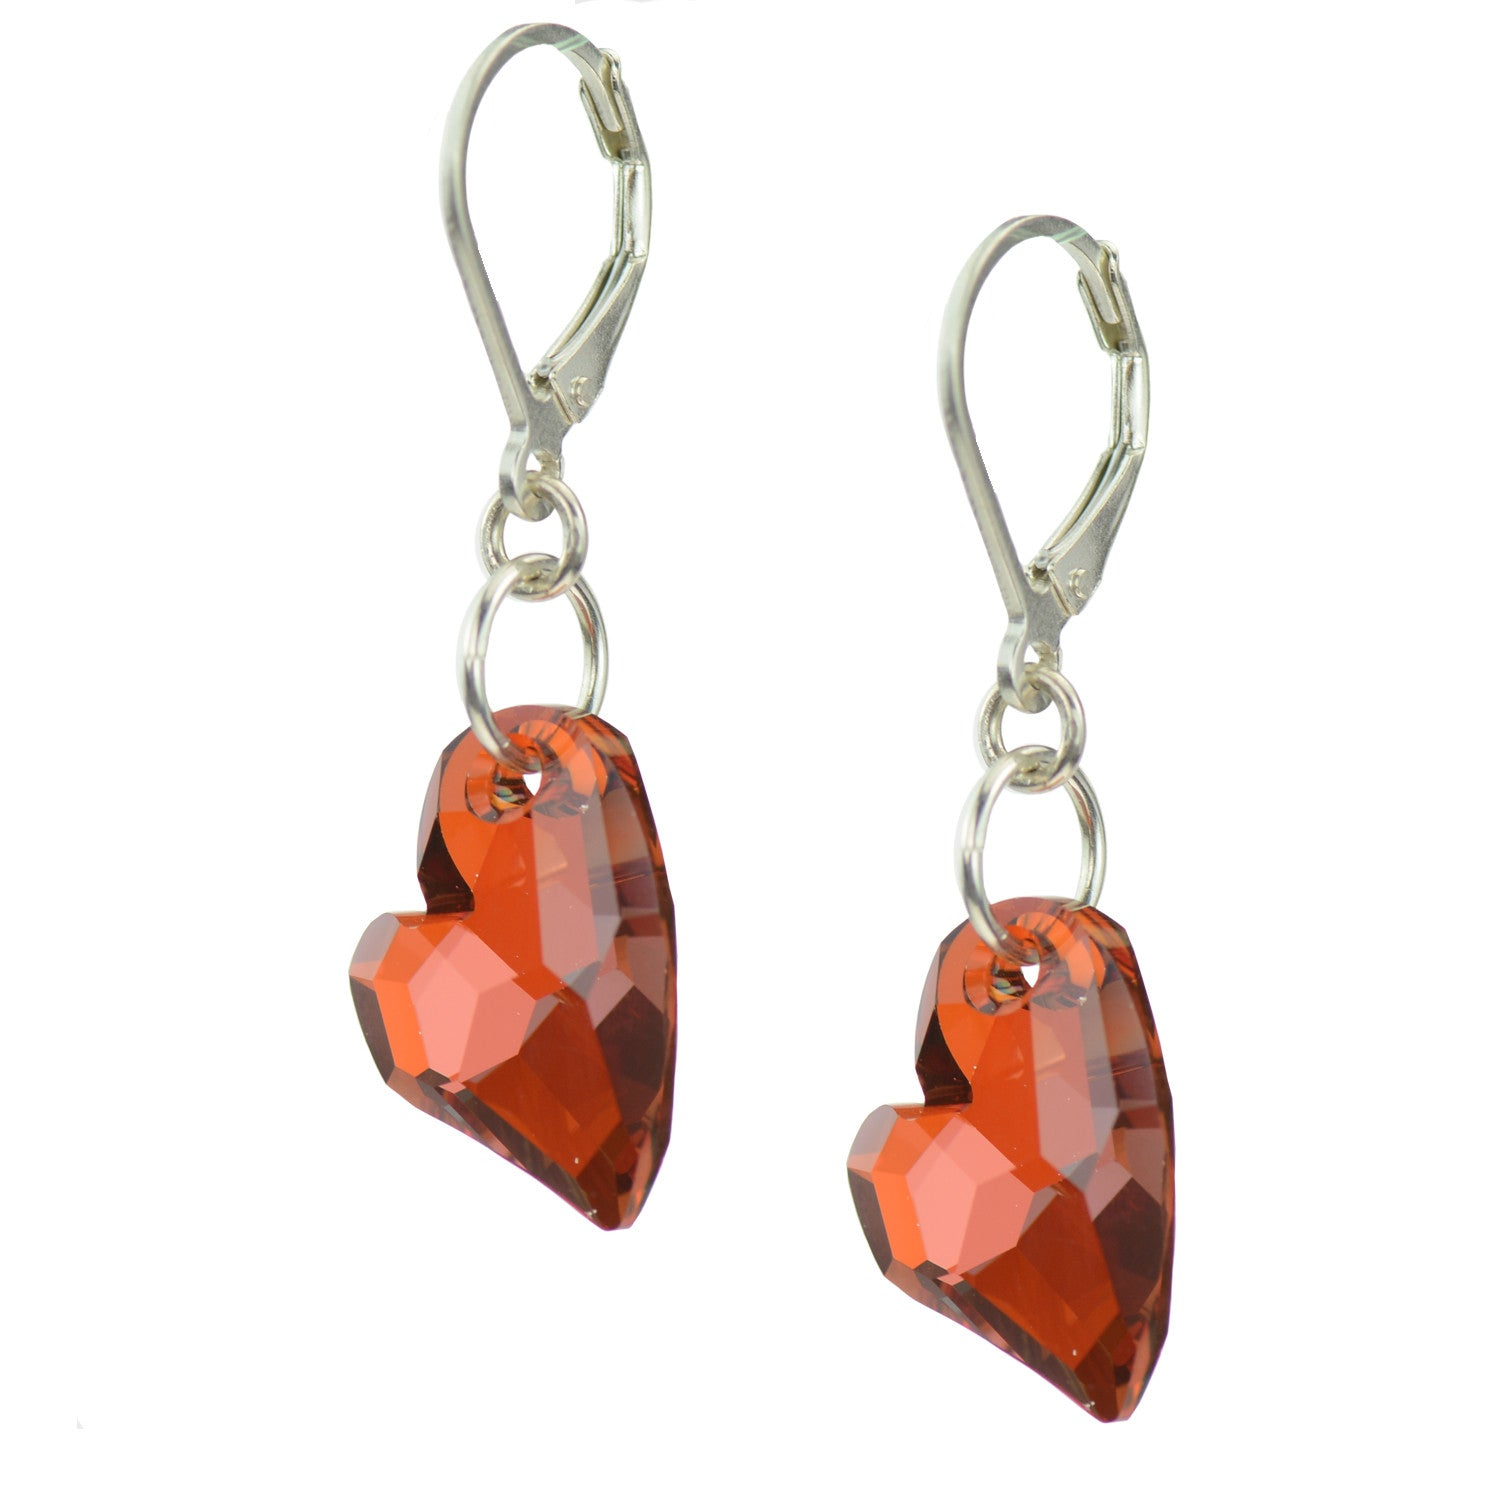 Swarovski Crystal Devoted 2 U Red Heart Earrings With Sterling Silver  Leverbacks